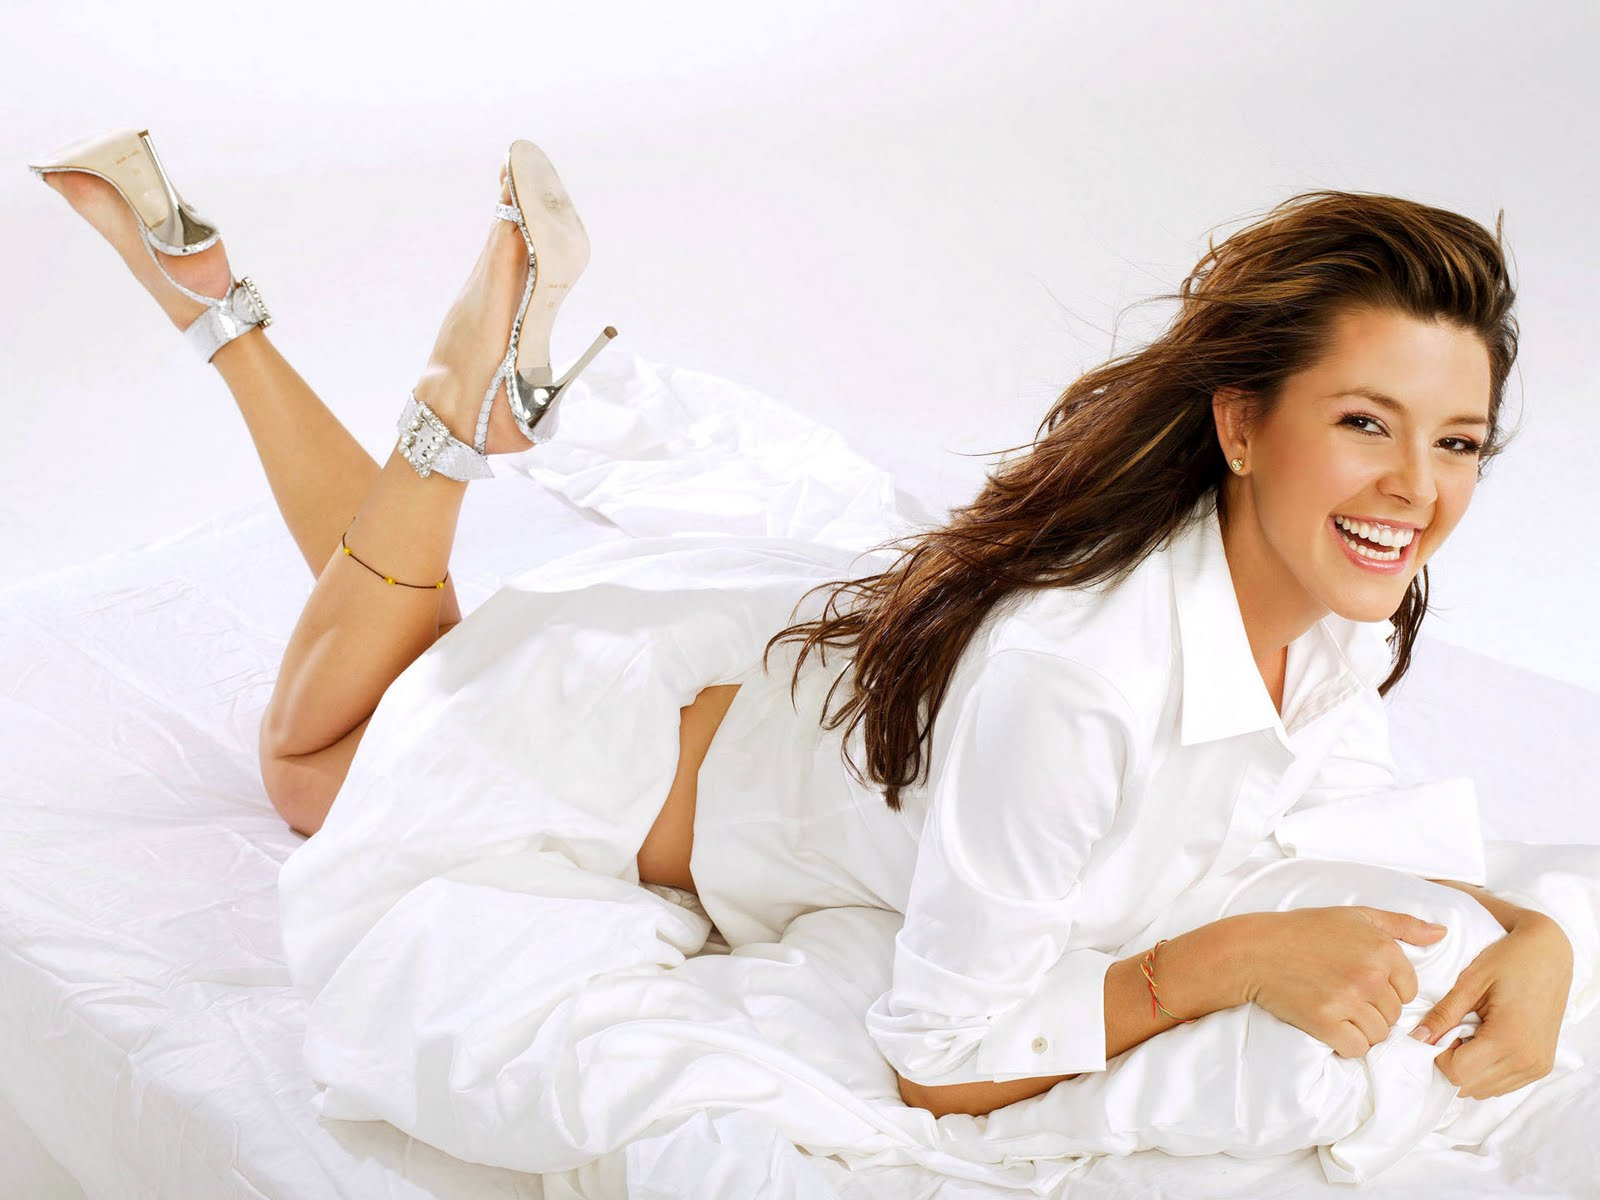 Alicia Machado La Madame YouTube - imagenes de alicia machado sin ropa